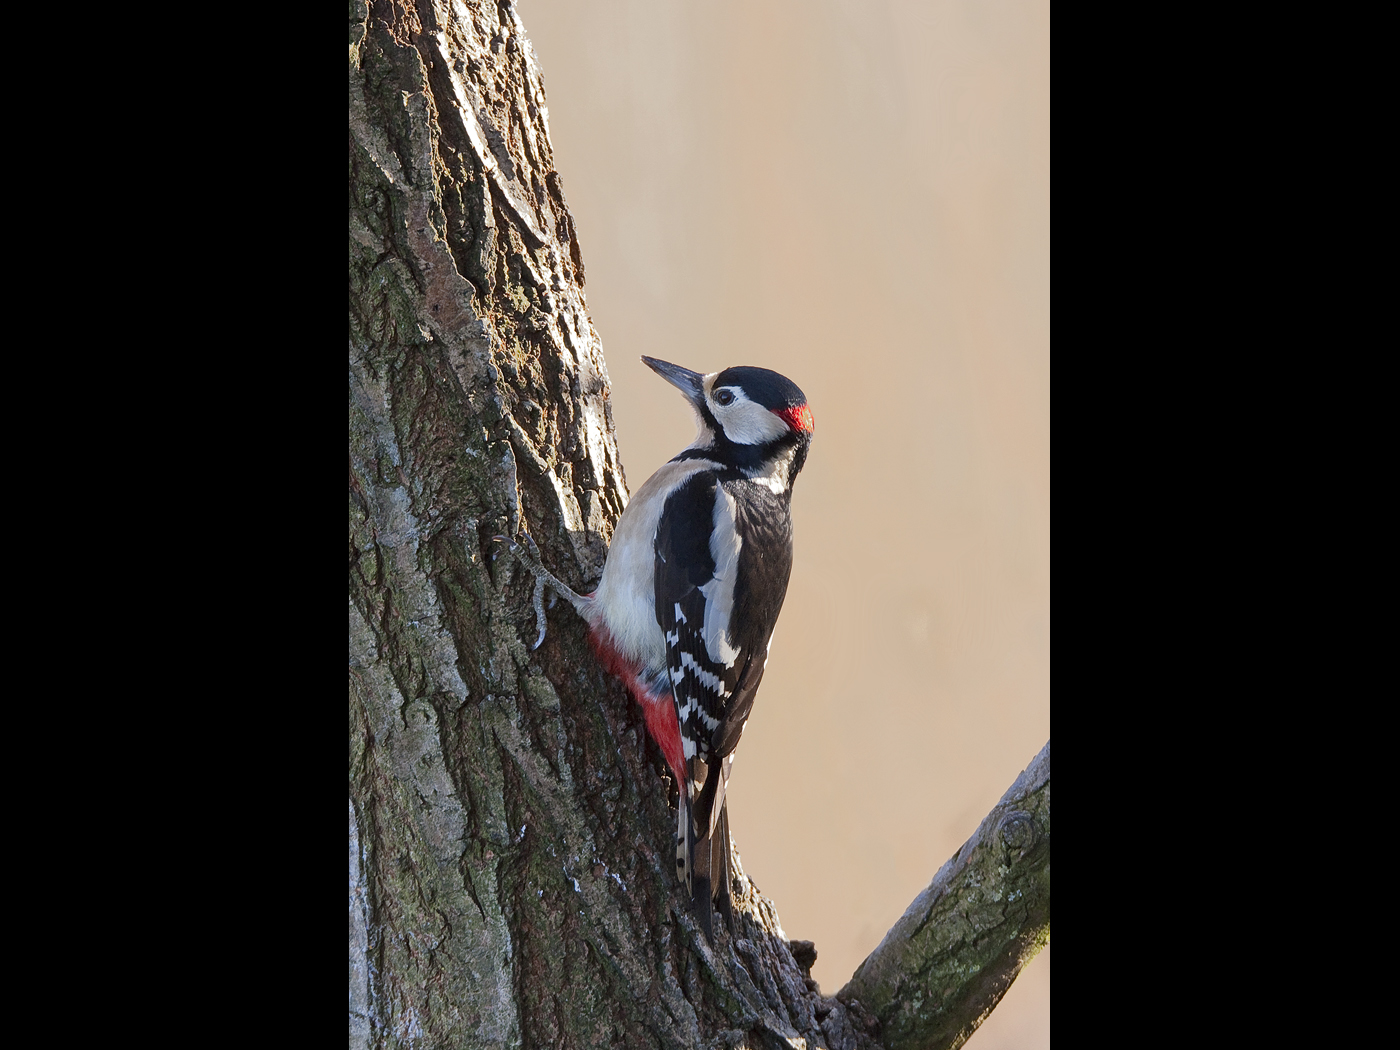 Male woodpecker